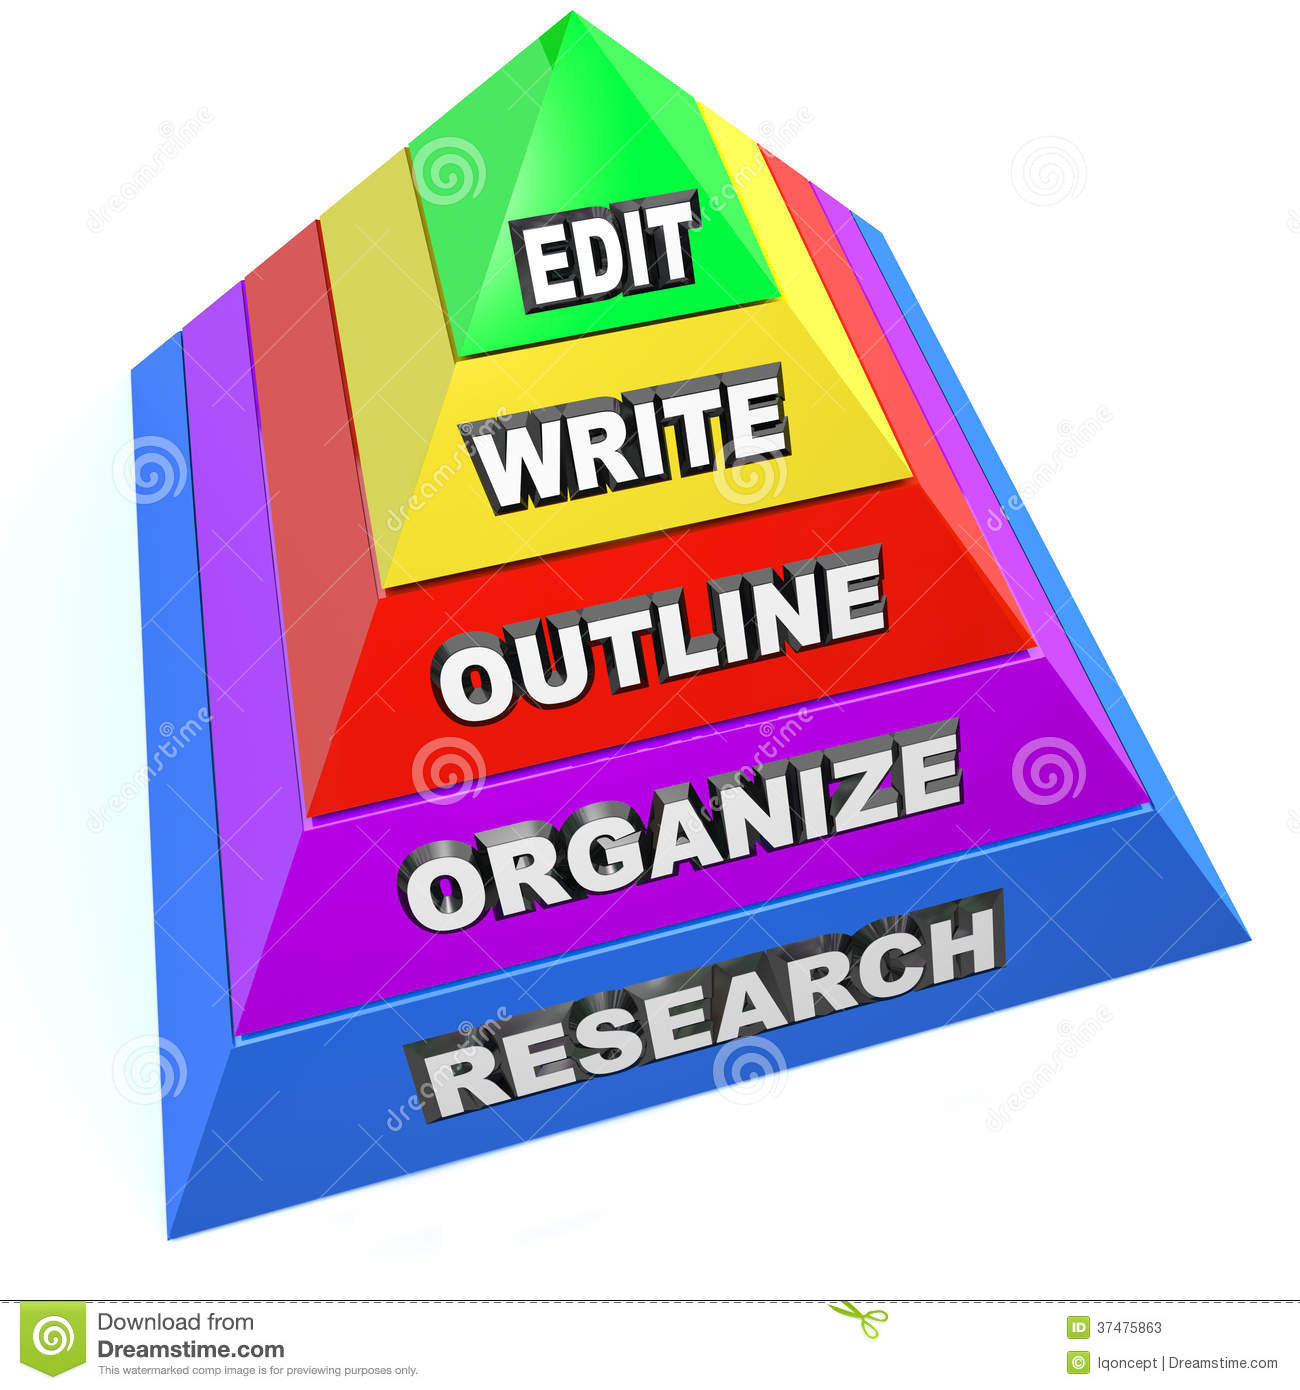 essay edit essay edit report web fc com edit write outline  edit write outline organize research writing pyramid steps plan edit write outline organize research writing pyramid